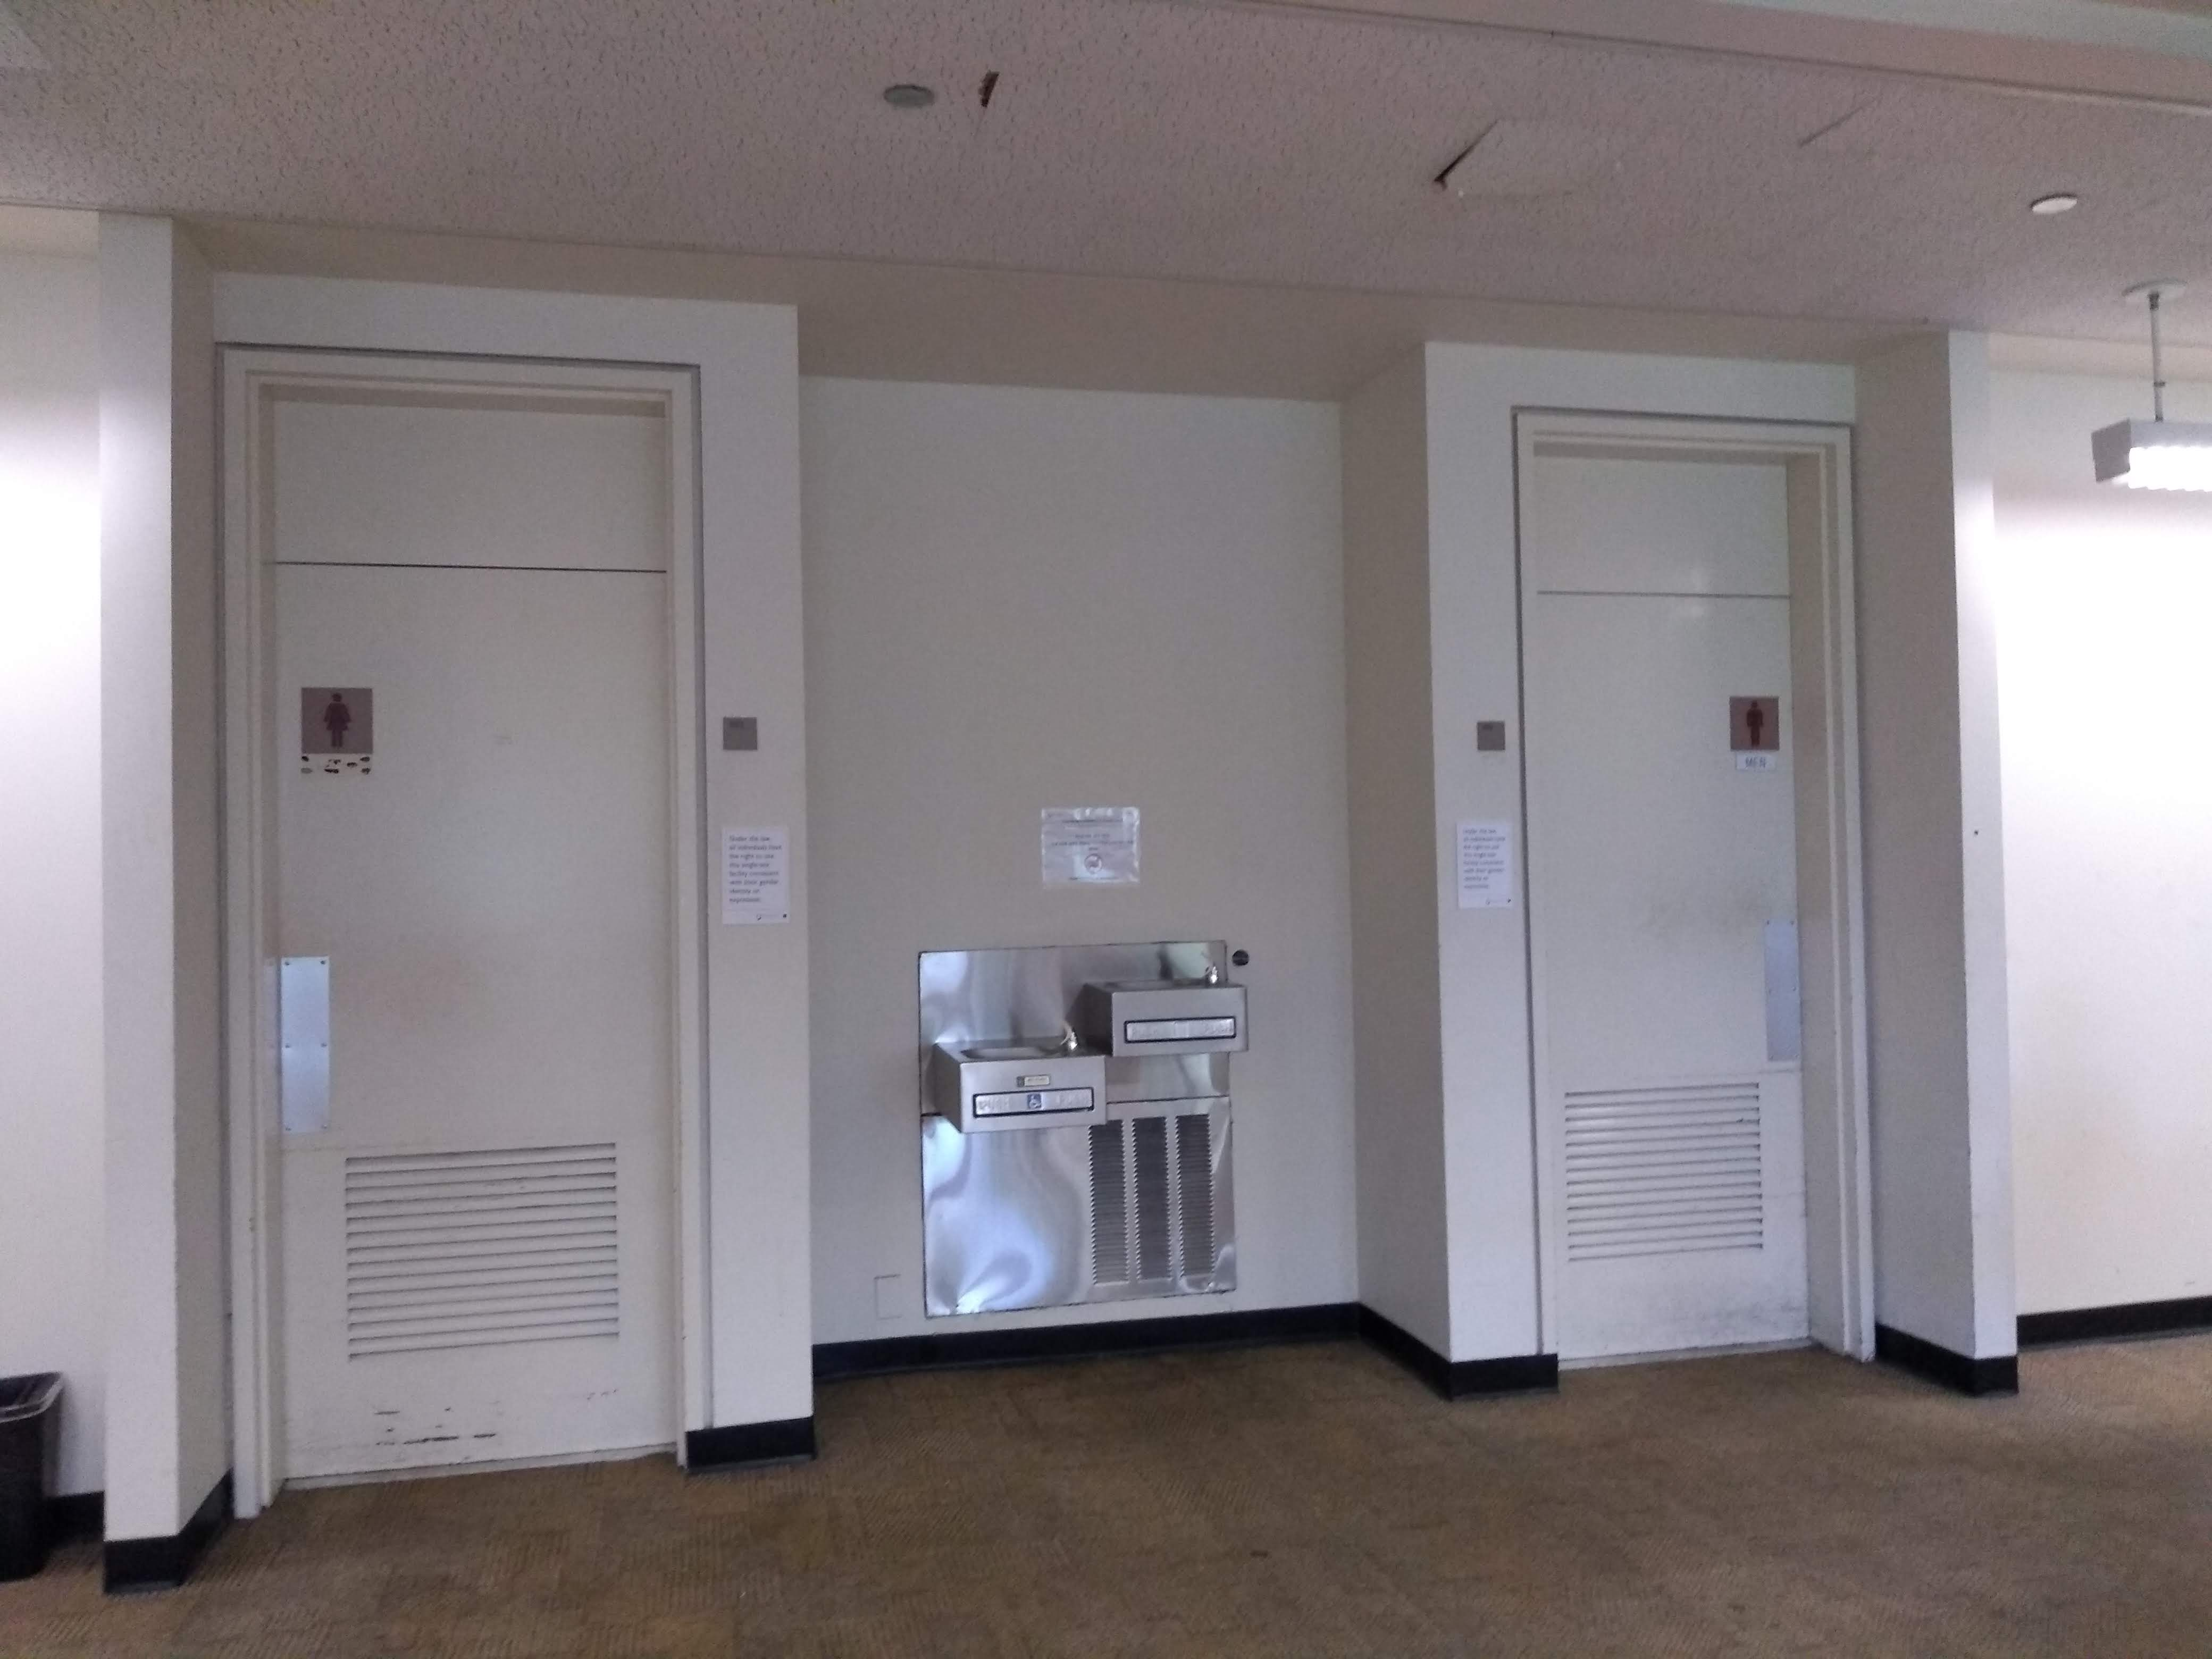 Restrooms, Level 1